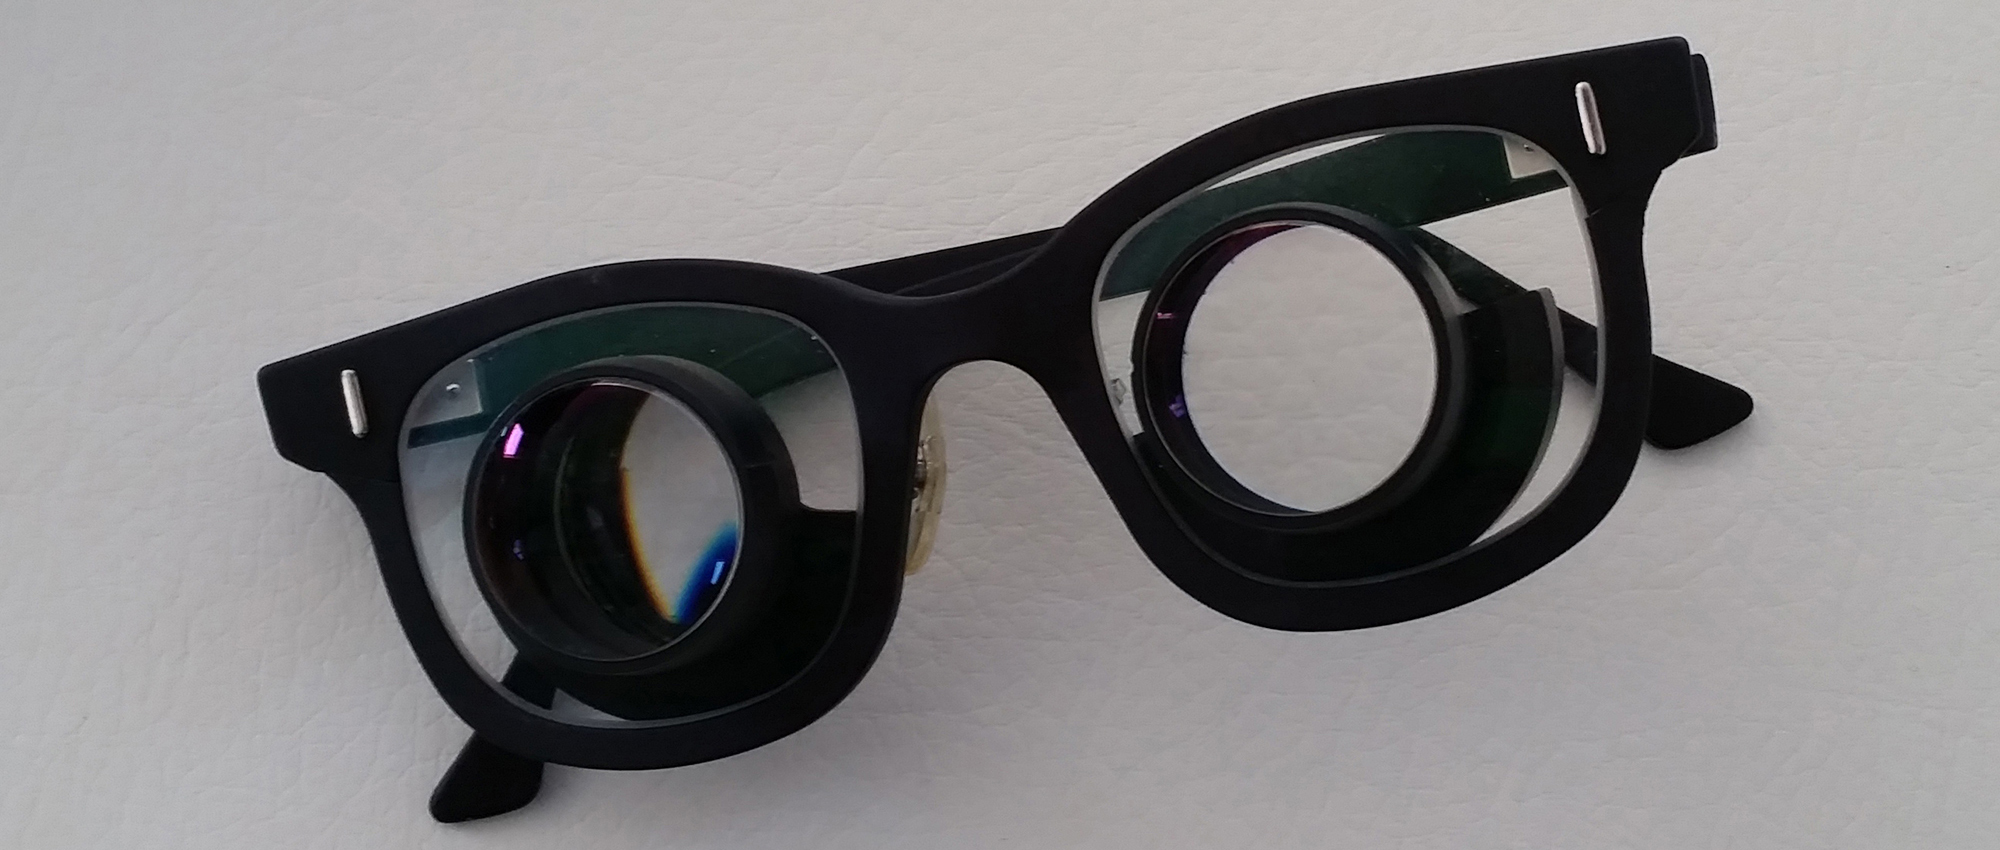 low-vision-glasses-telescopes.jpg